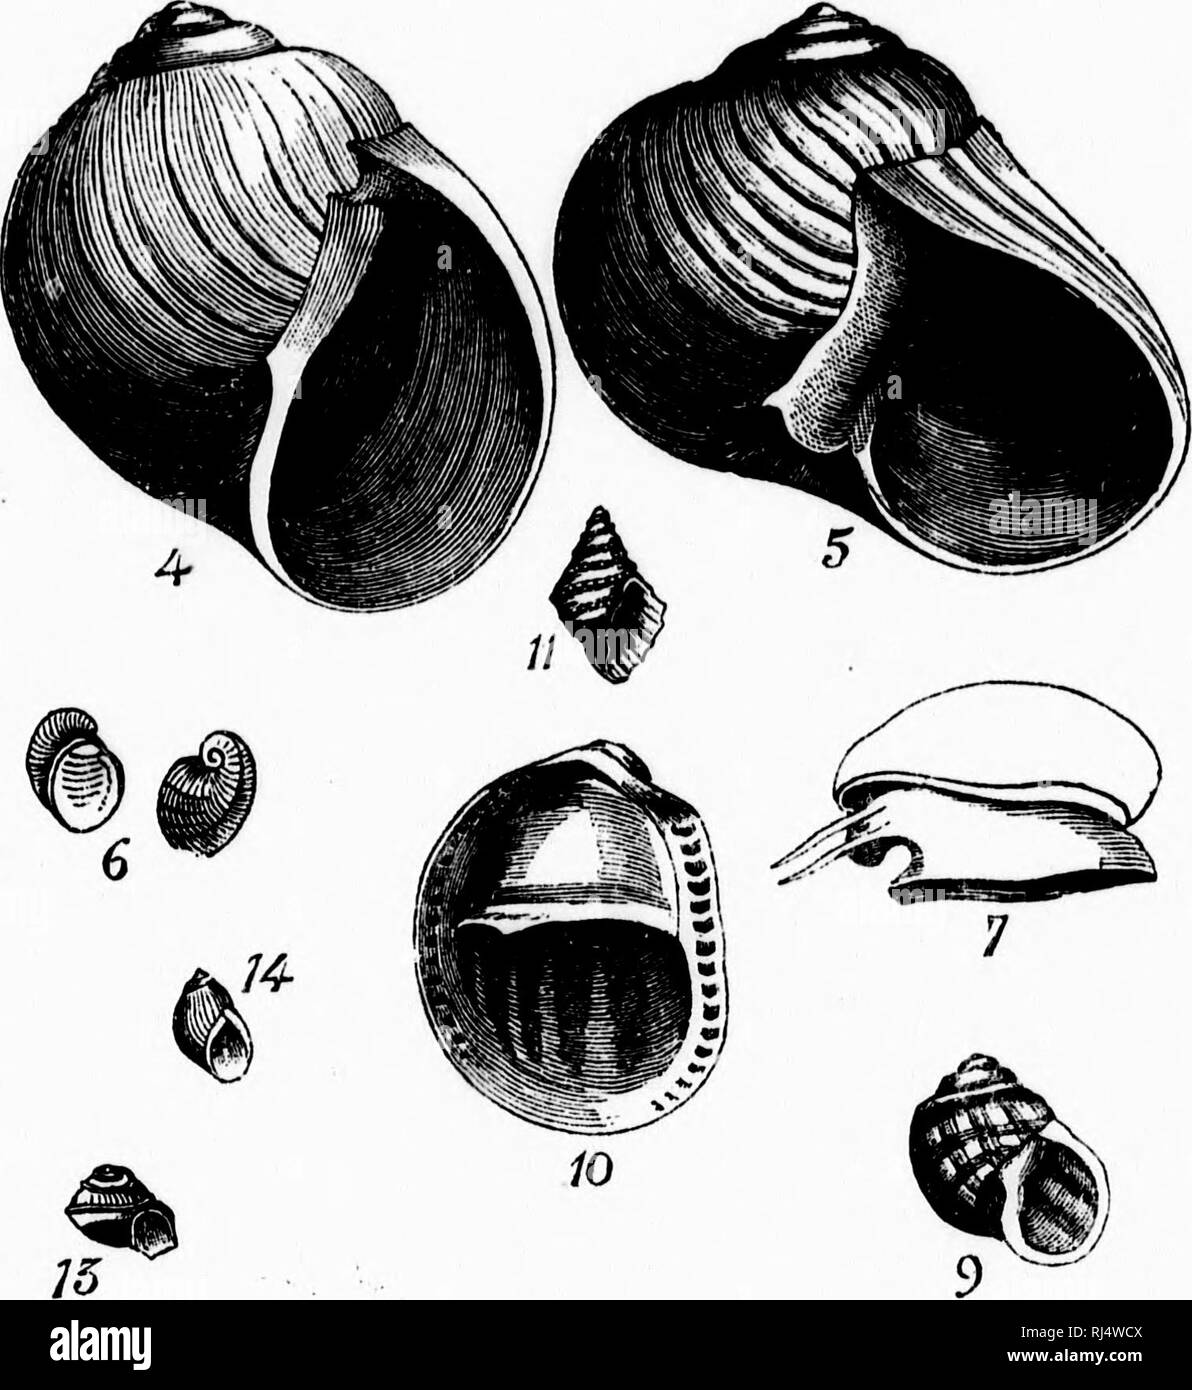 """. Les mollusques de la province de Québec [microforme] : première partie, les céphalopodes, ptéropodes et gastropodes. Mollusques; Céphalopodes; Mollusks; Cephalopoda. PL. m. Page .. 70 . so .. 80 .. 8:! . 84 .. 8f; . HG . 88 .. 88 . 88 . 81) . itO . !""""J . 80. Please note that these images are extracted from scanned page images that may have been digitally enhanced for readability - coloration and appearance of these illustrations may not perfectly resemble the original work.. Provancher, L. , 1820-1892. [Québec? : s. n. ] - Stock Image"""